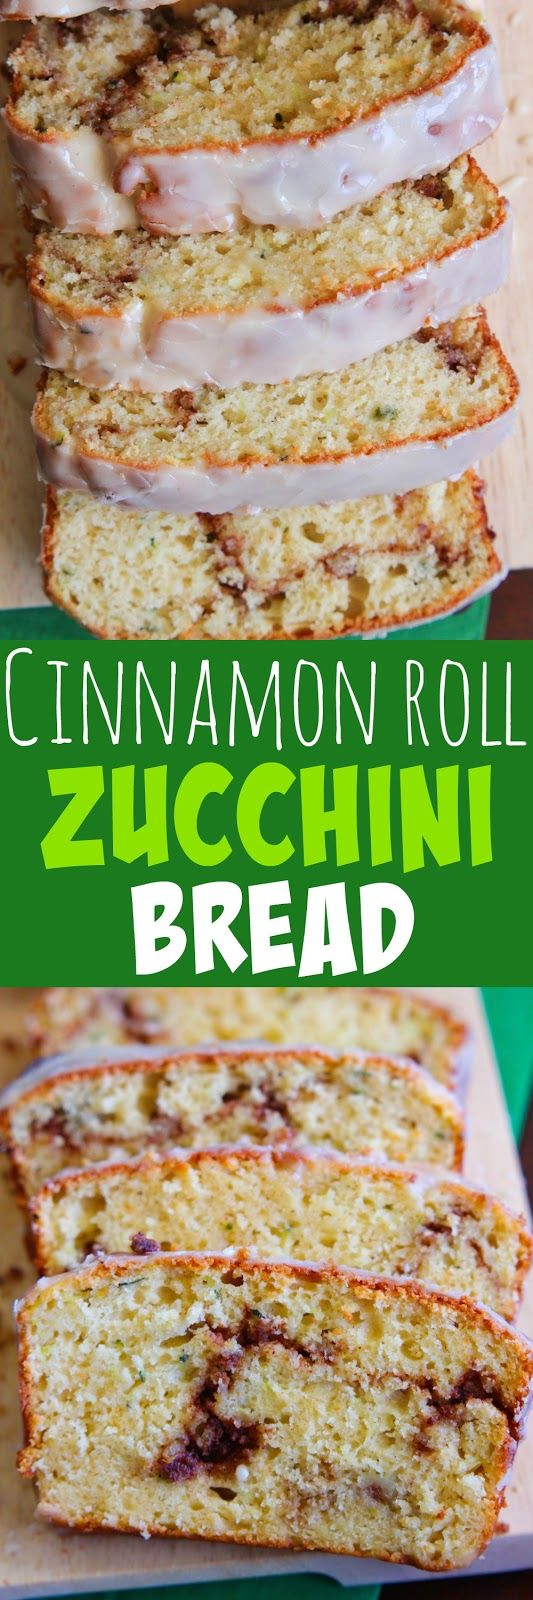 I turned one of our favorite Cinnamon Roll Quick Bread recipes in to a zucchini version.  When you have a lot of zucchini on hand, yo...